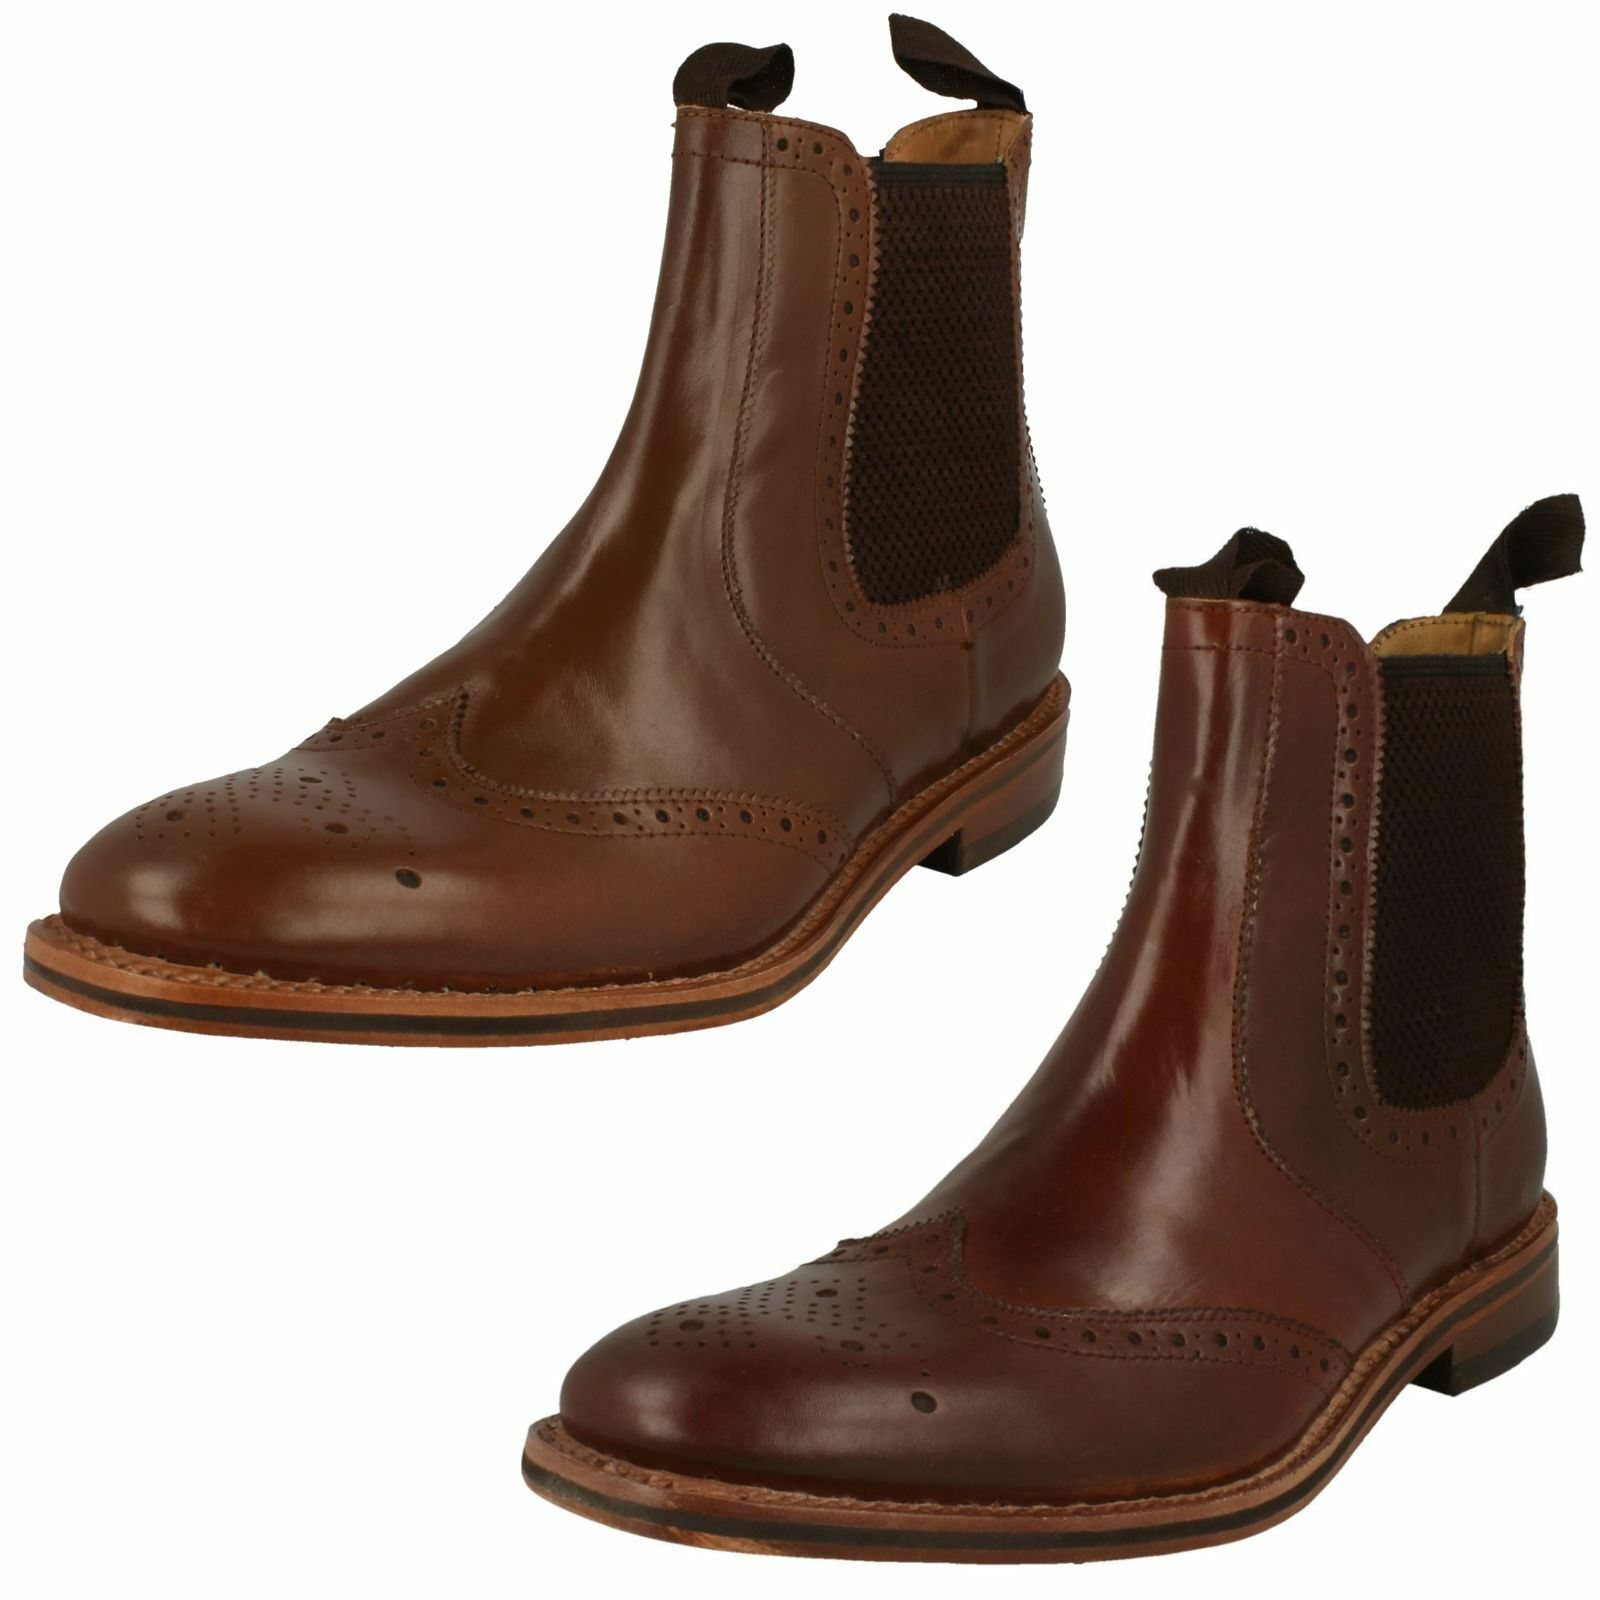 Mens Catesby Ankle Boots *MCATESCW158T*